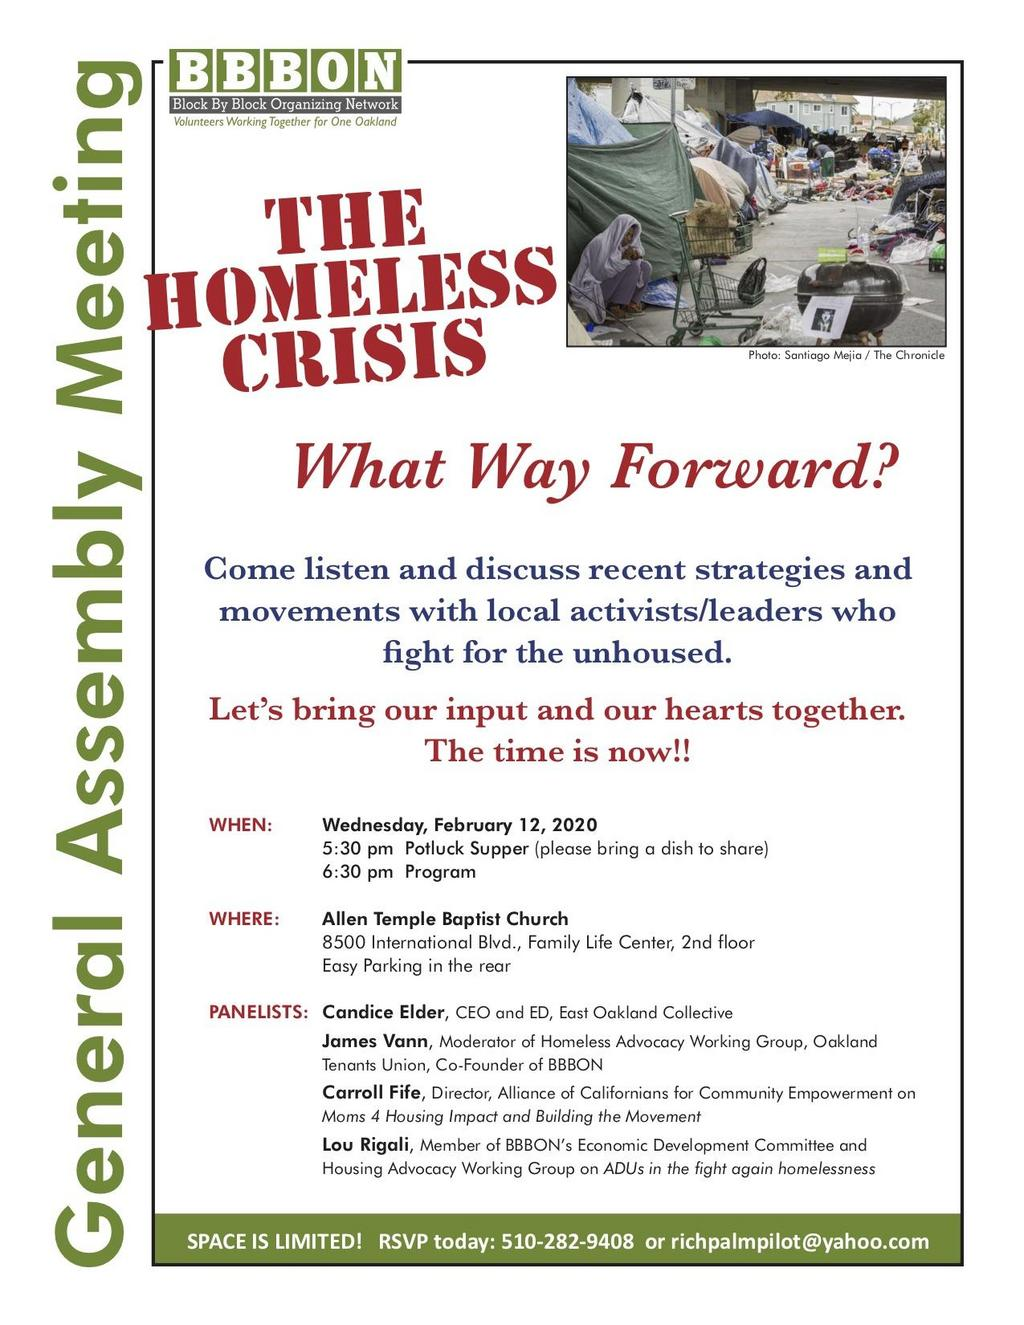 """The Homeless Crisis: What Way Forward?"" @ Allen Temple Baptist Church, Family Life Center, 2nd Floor"